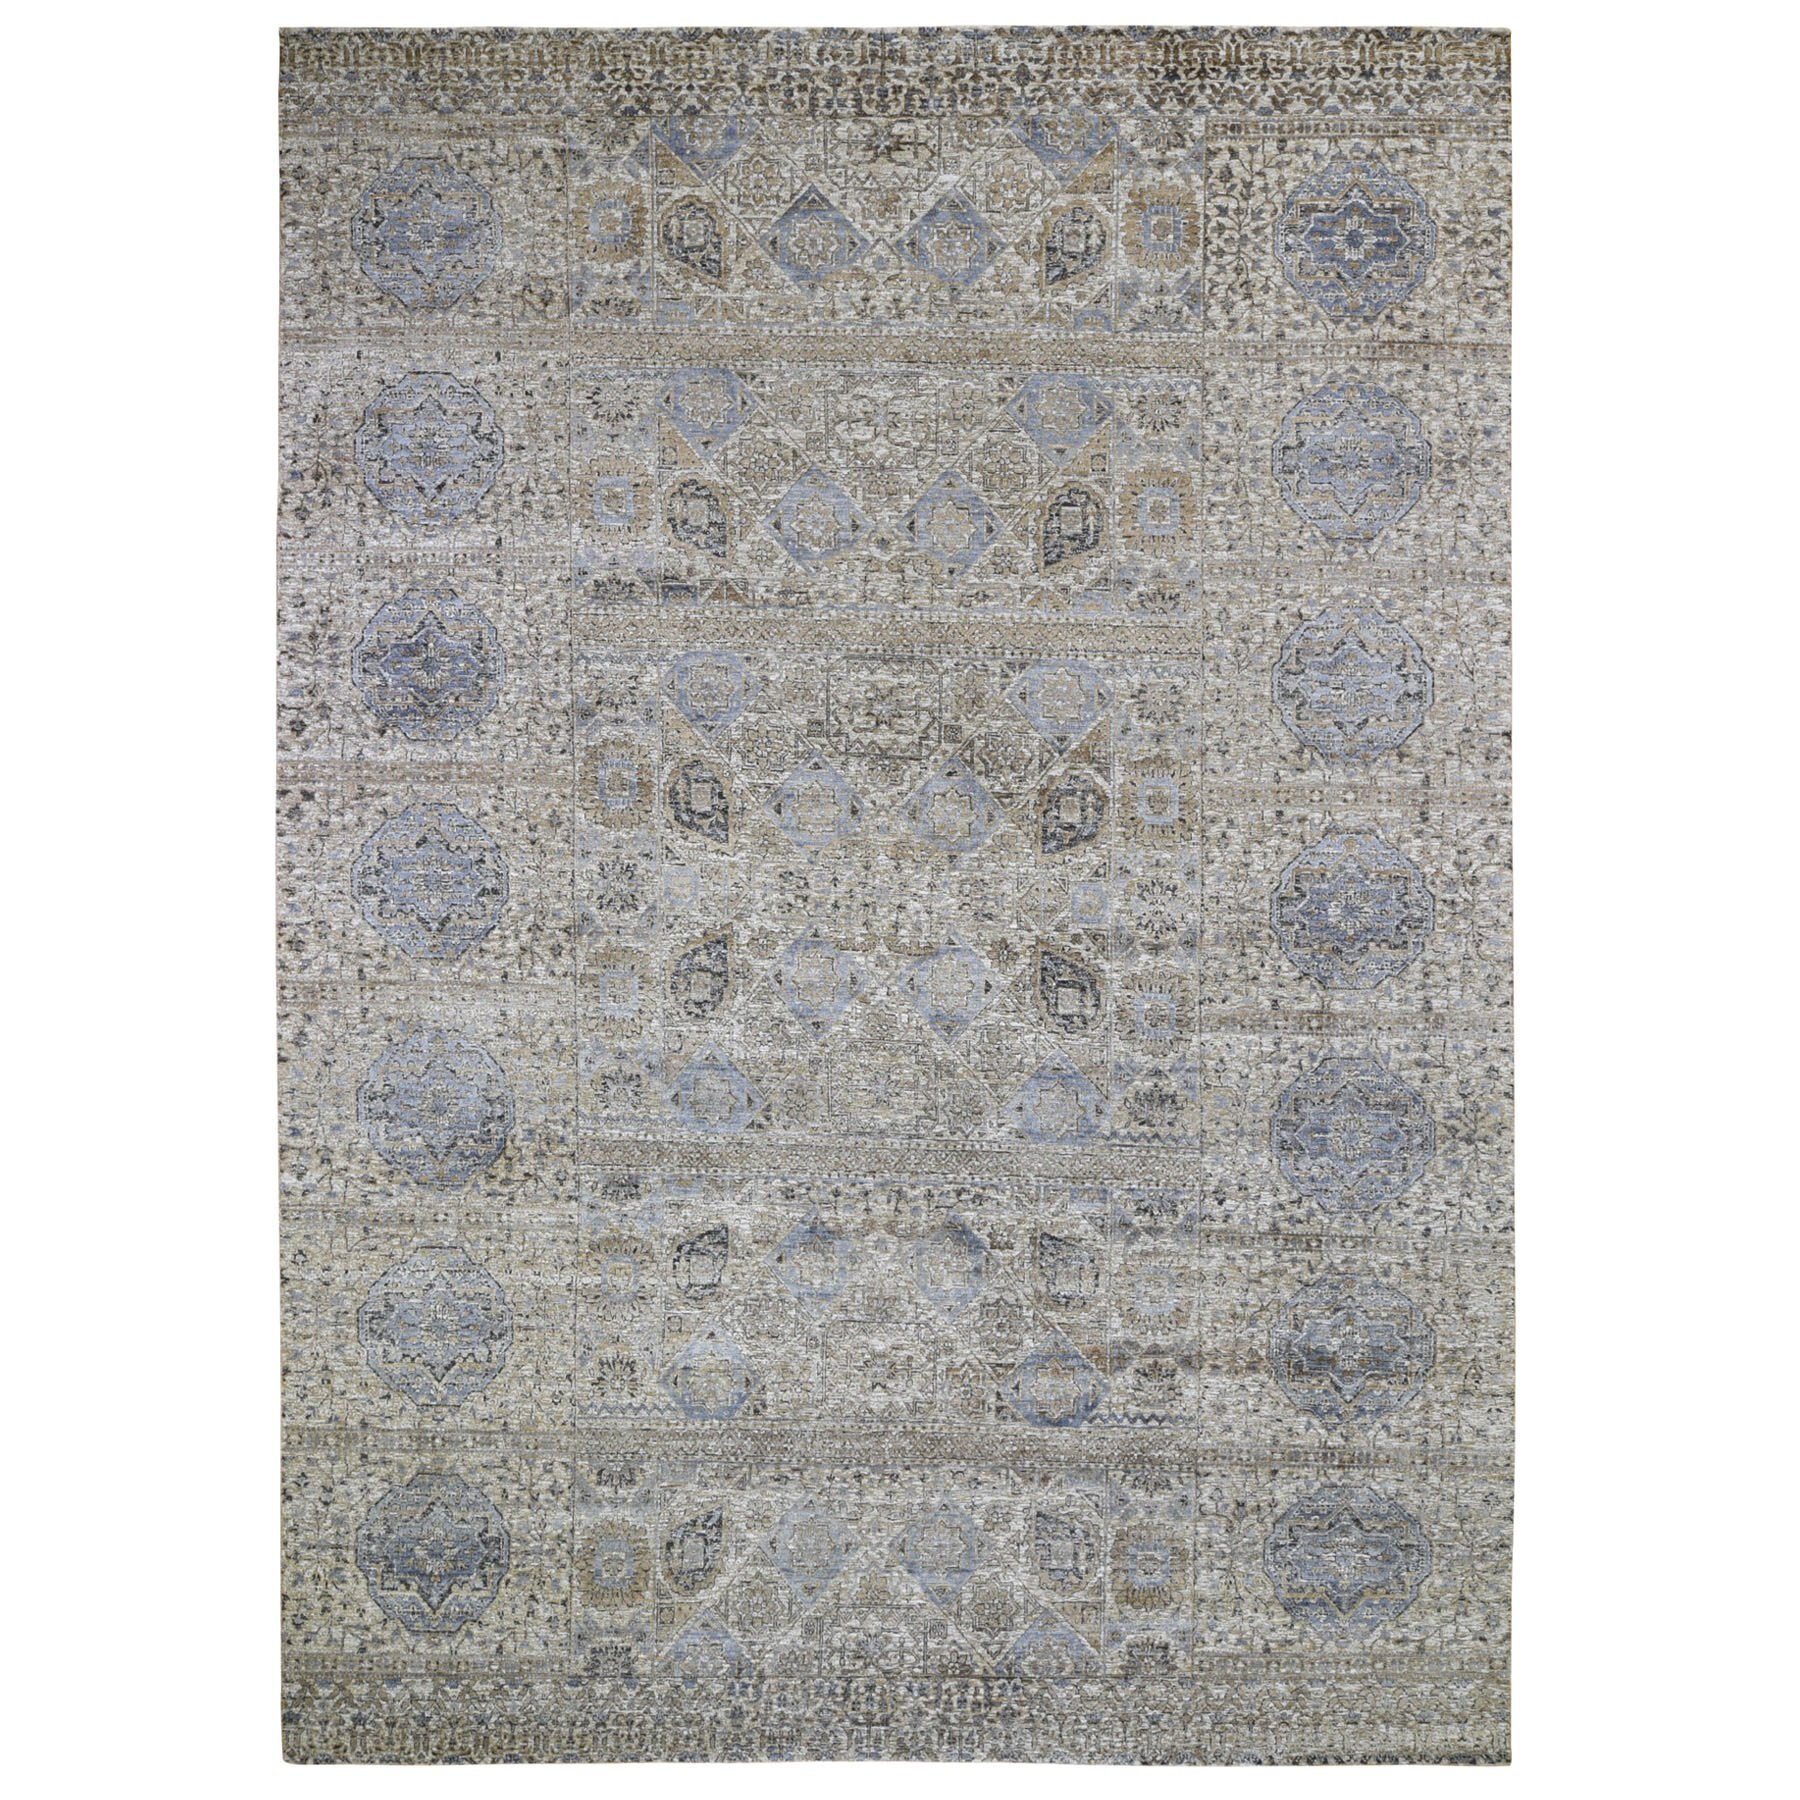 """8'10""""X12'3"""" Beige-Silver Silk With Textured Wool Mamluk Design Hand Knotted Rug moad9cec"""